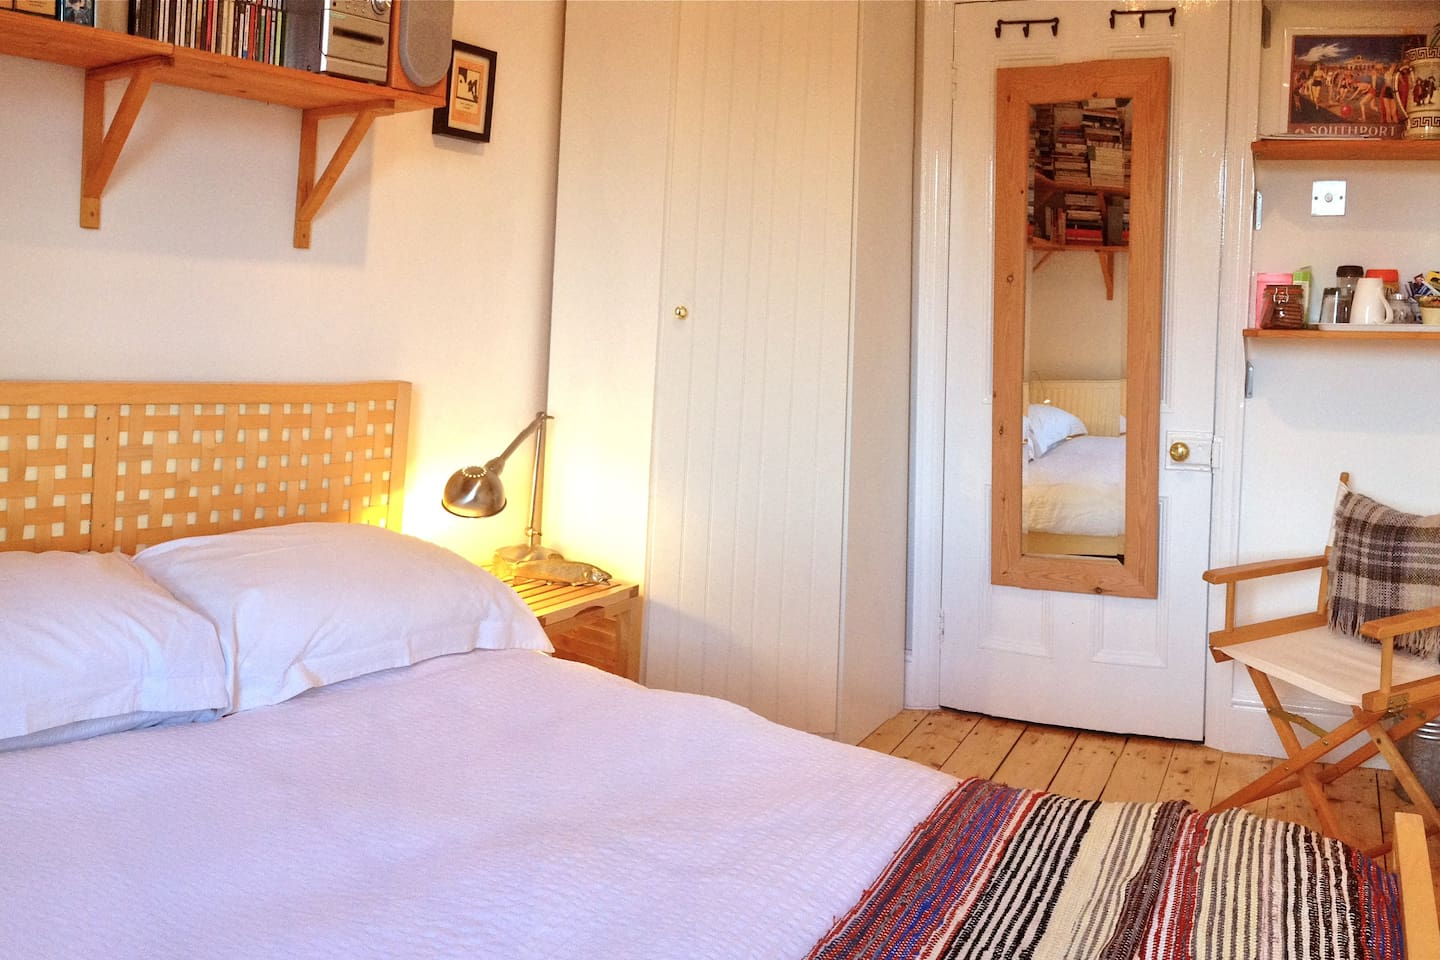 Small double room, more suited for a single person or a couple for one or two nights only (floor space is limited)